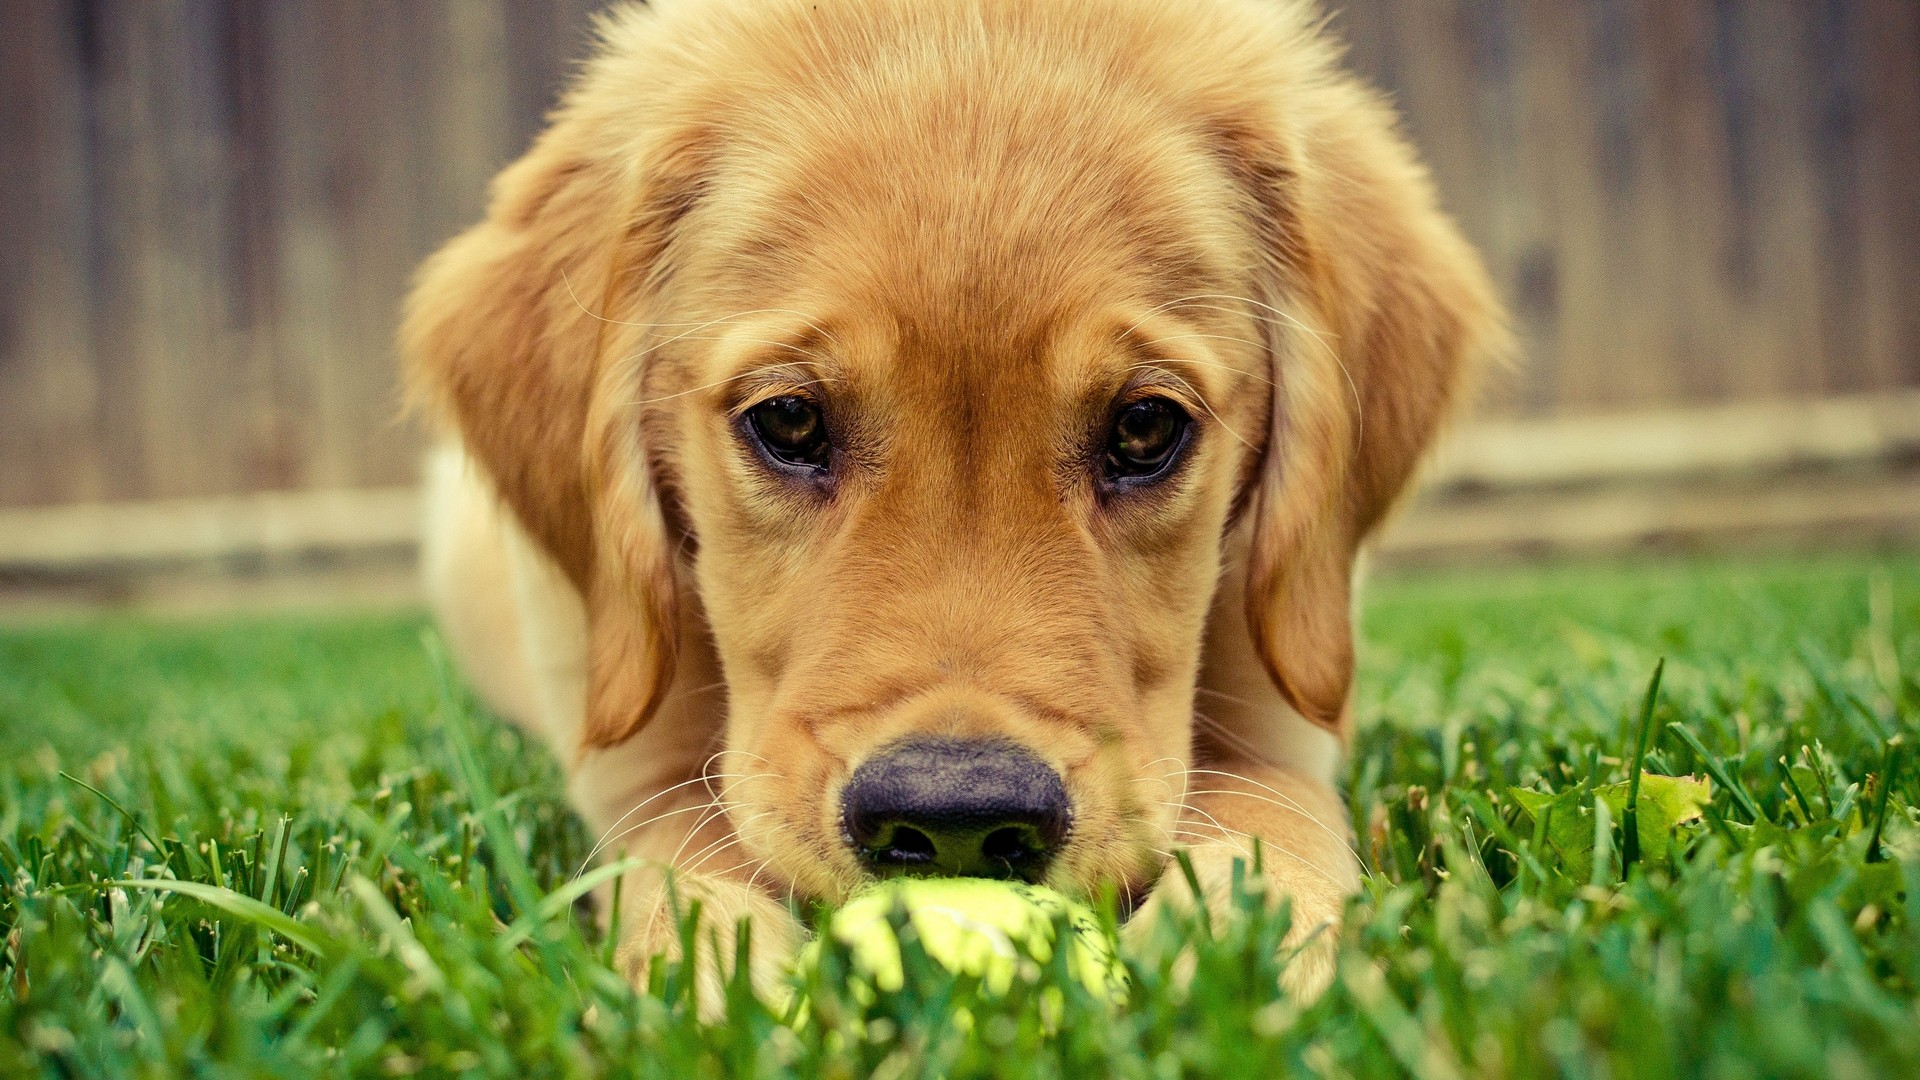 Cute Dog Hd Animals 4k Wallpapers Images Backgrounds Photos And Pictures